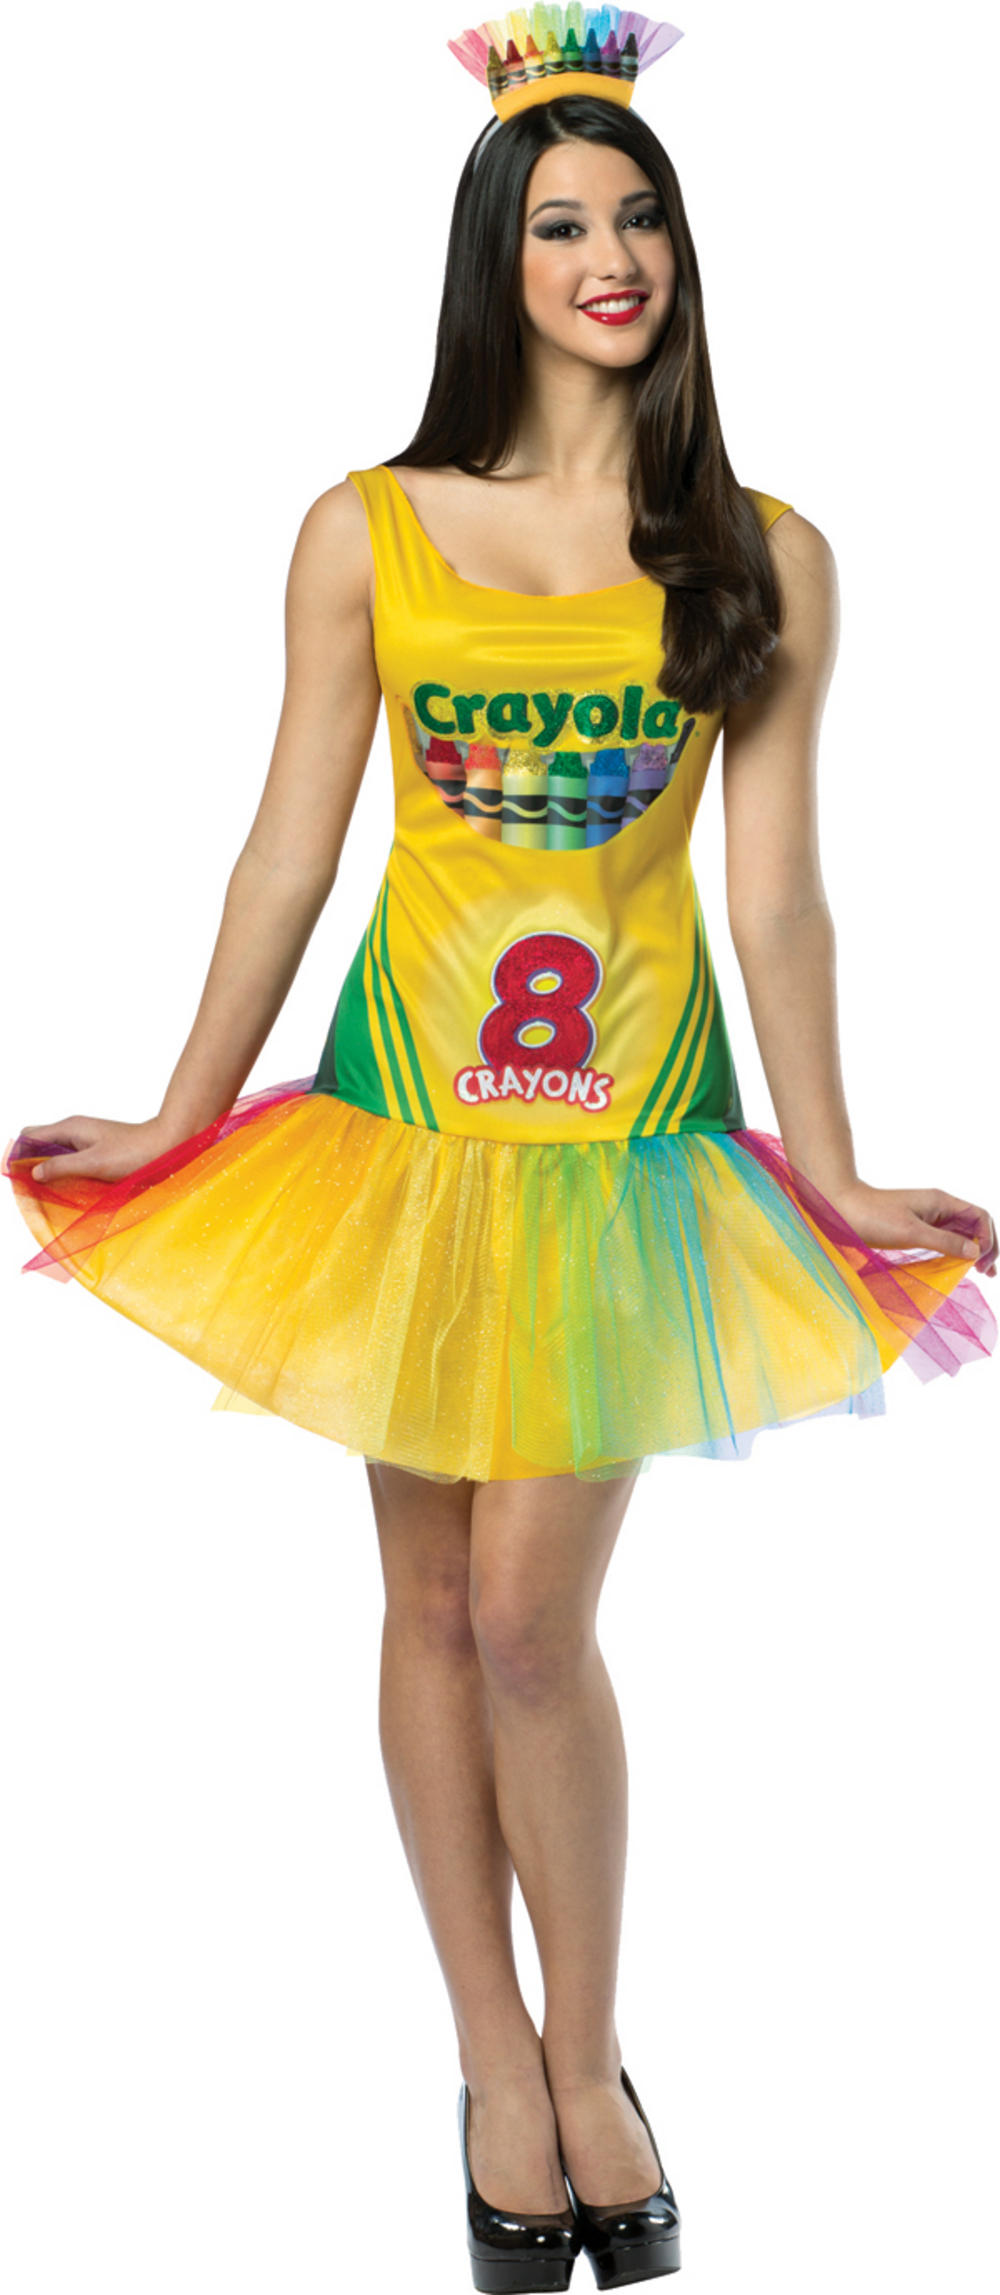 Crayola Crayon Box Tutu Dress Ladies Costume